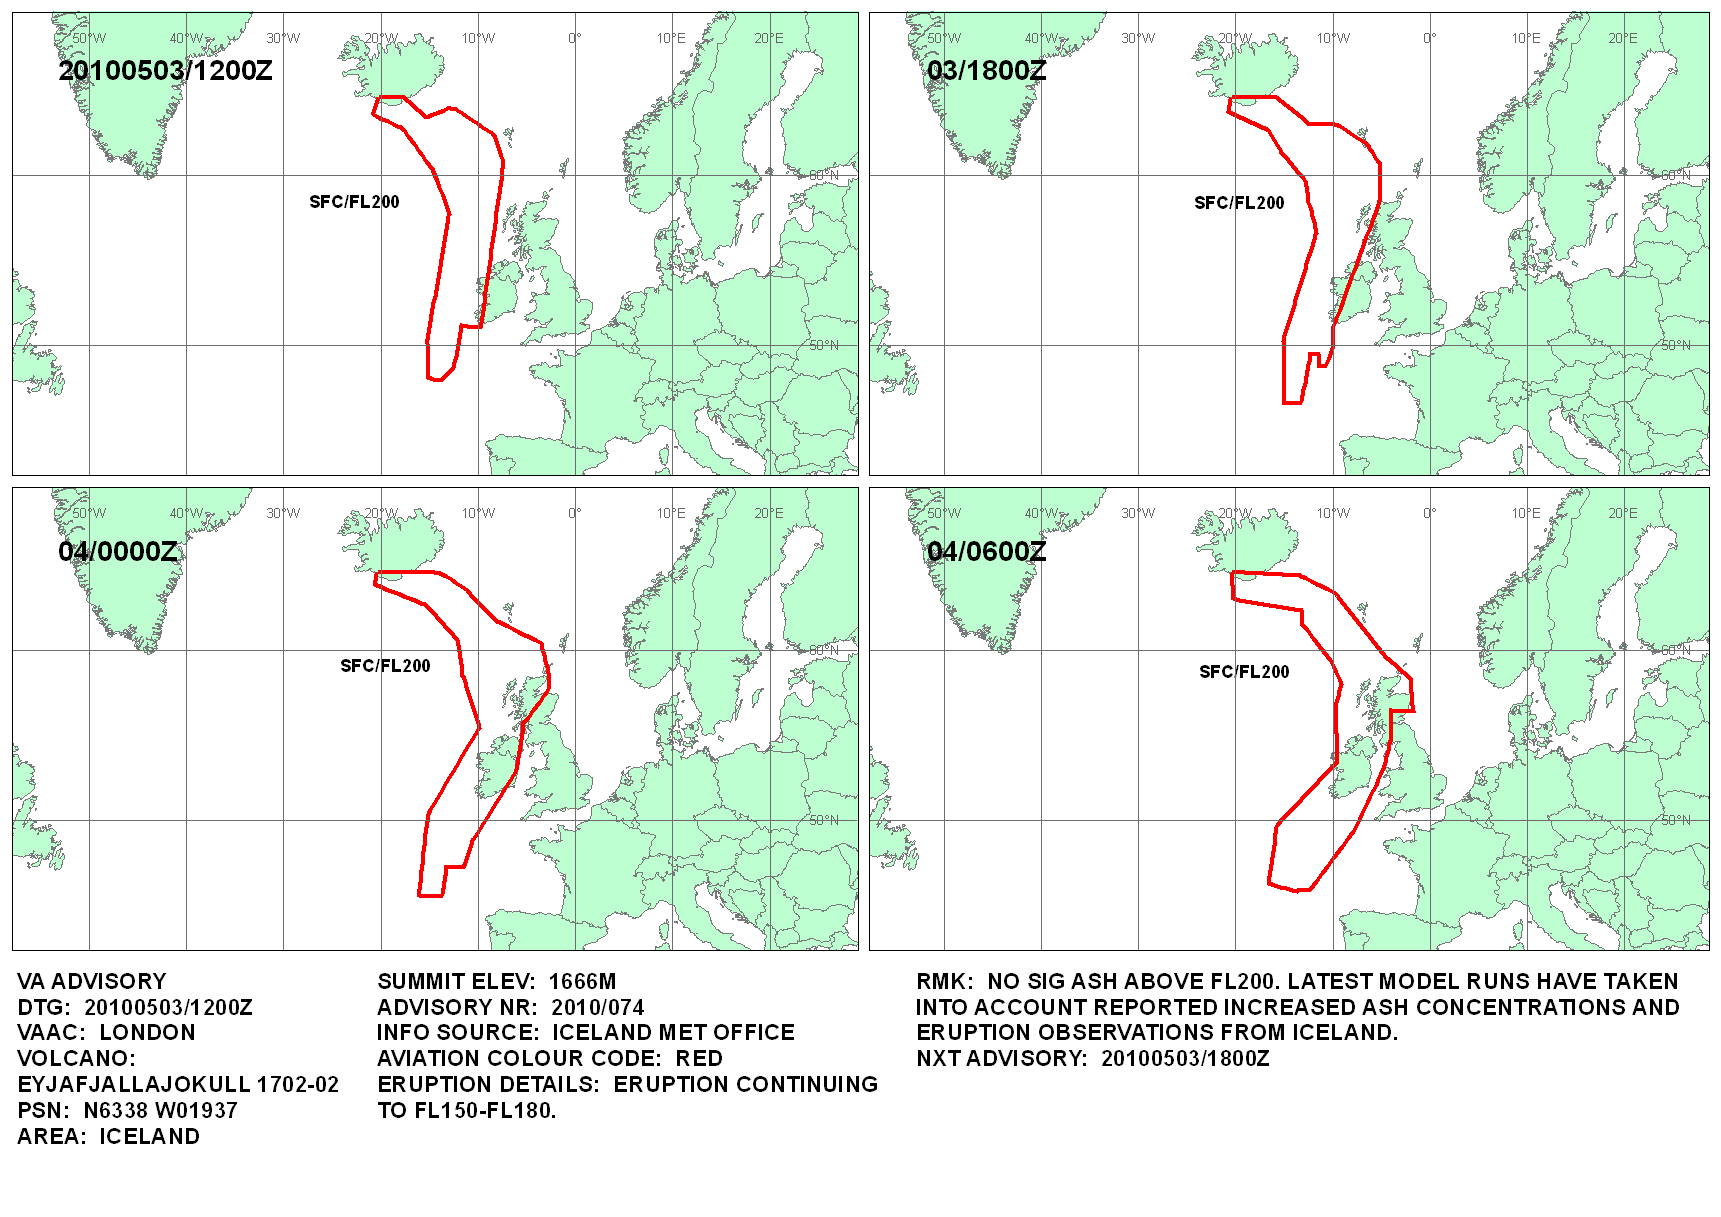 http://www.metoffice.gov.uk/aviation/vaac/data/VAG_1272886826.png